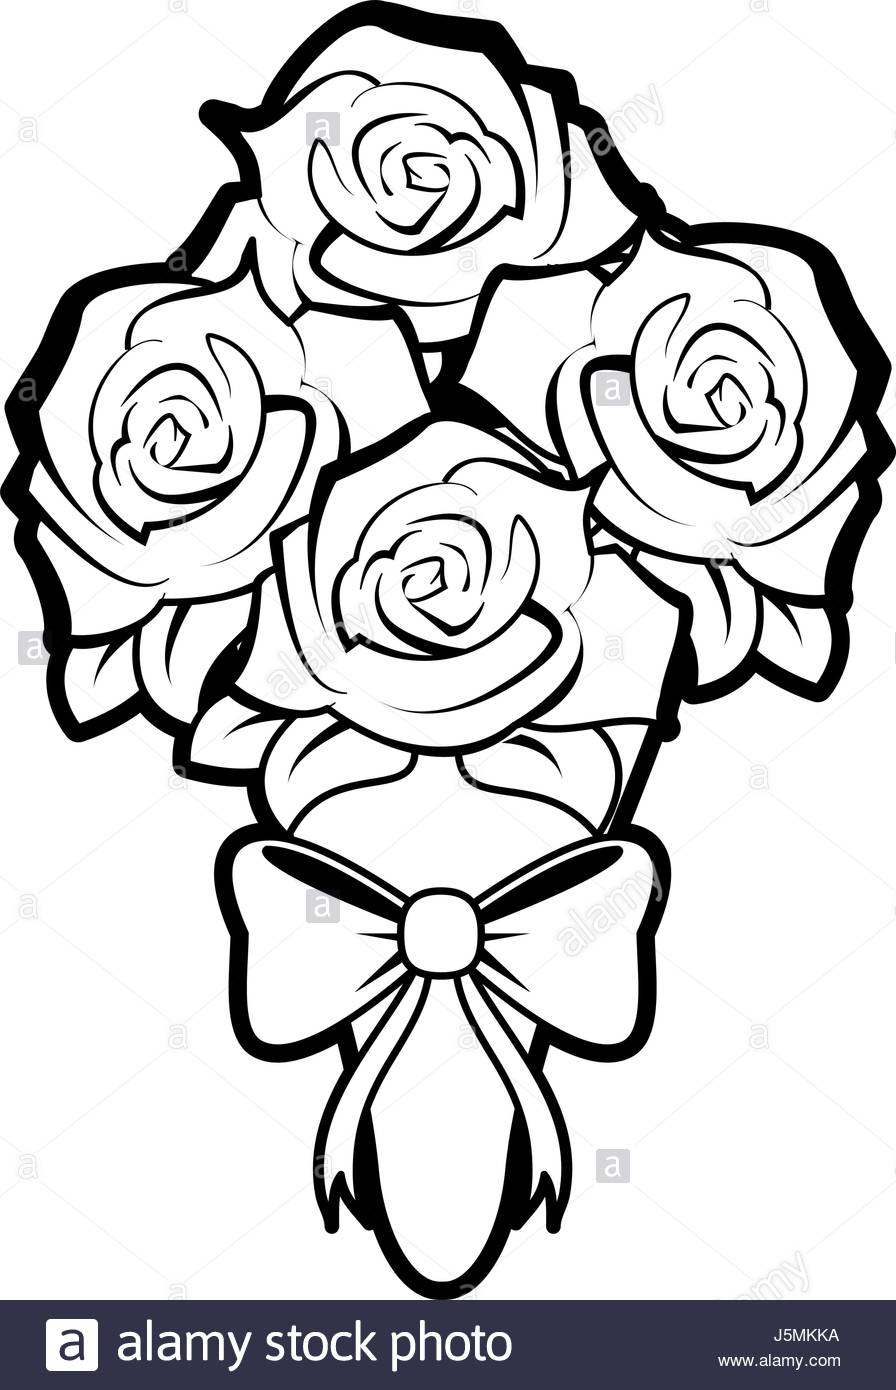 896x1390 Sketch Silhouette Image Wedding Bouquet Of Roses Stock Vector Art